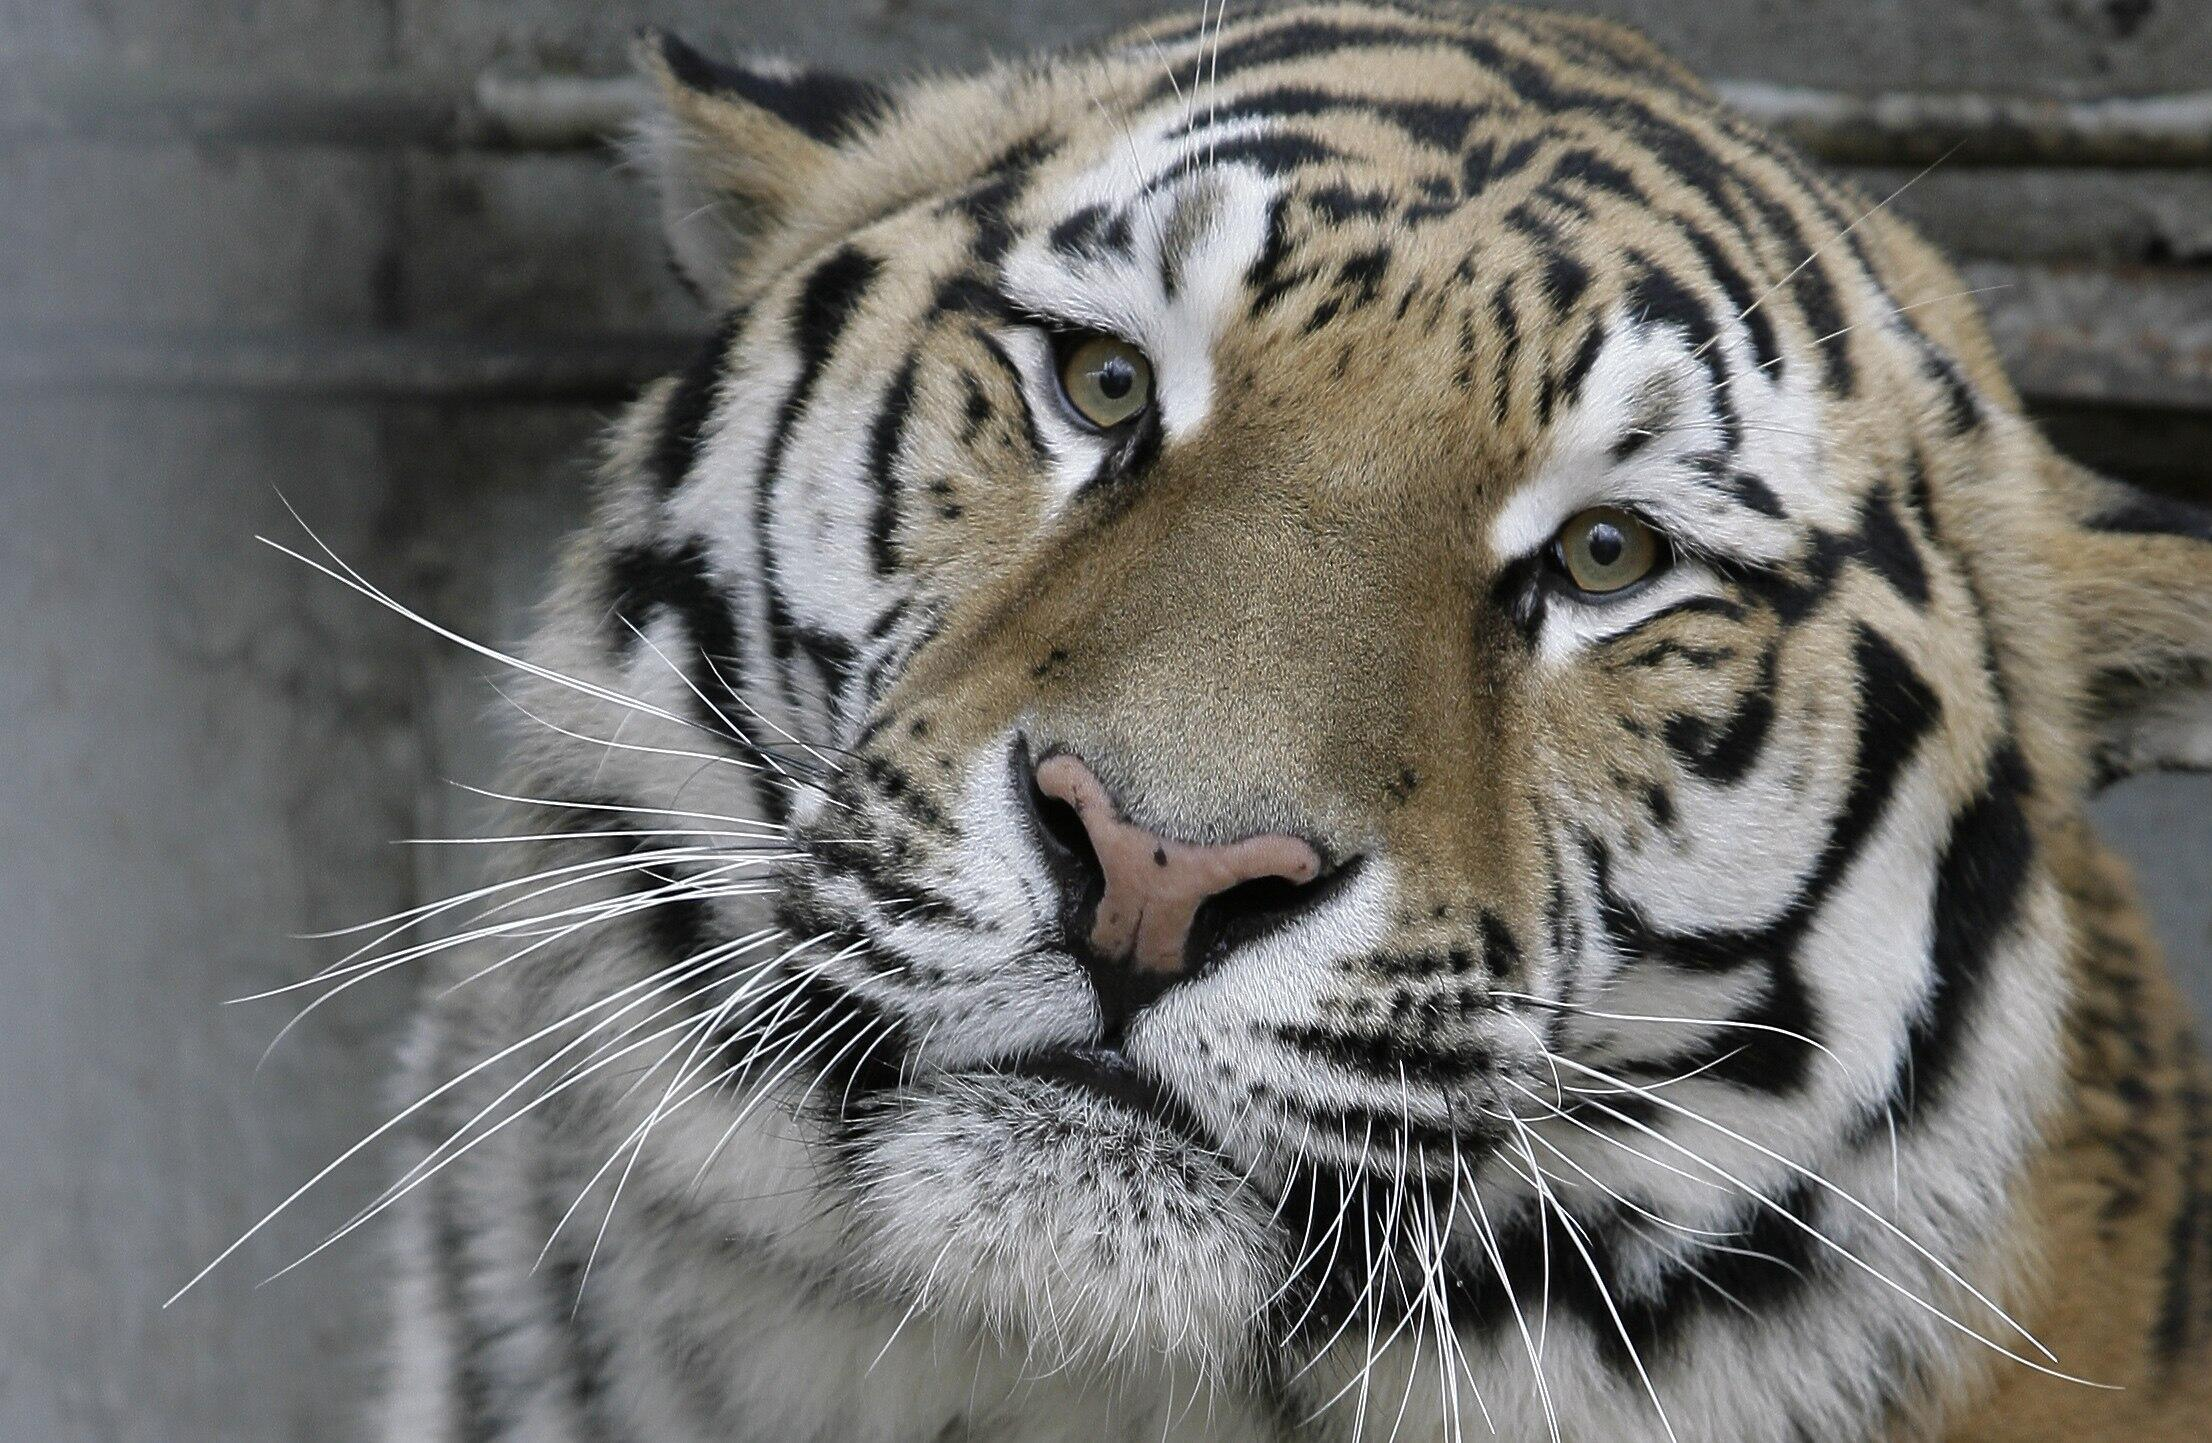 Artyom, a three-year-old Amur tiger, looks out of his enclosure at the zoo of Rostov-on Don